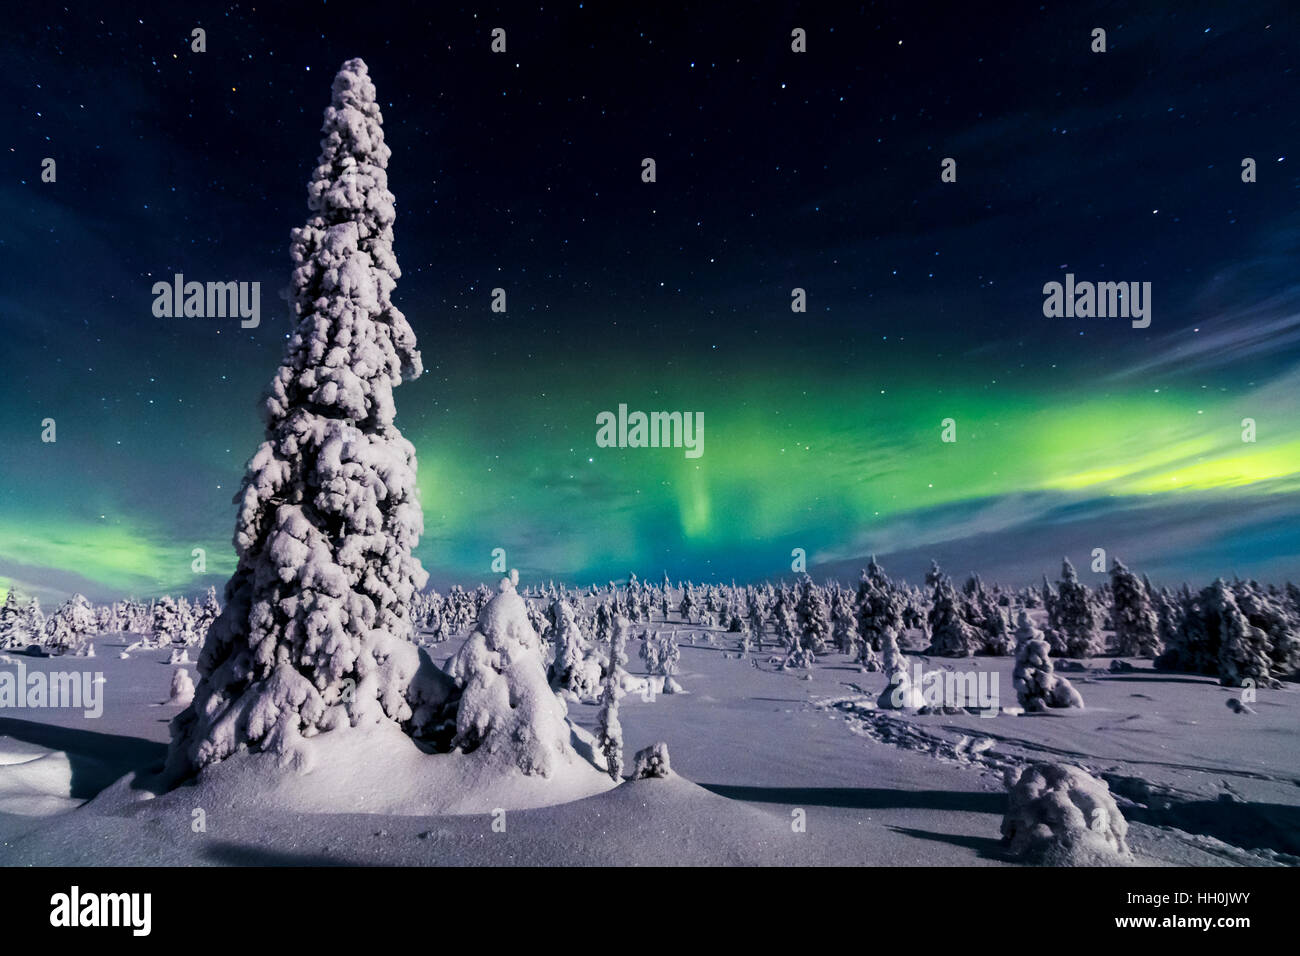 Northern Lights dans le parc national de riisitunturi, Finlande Photo Stock